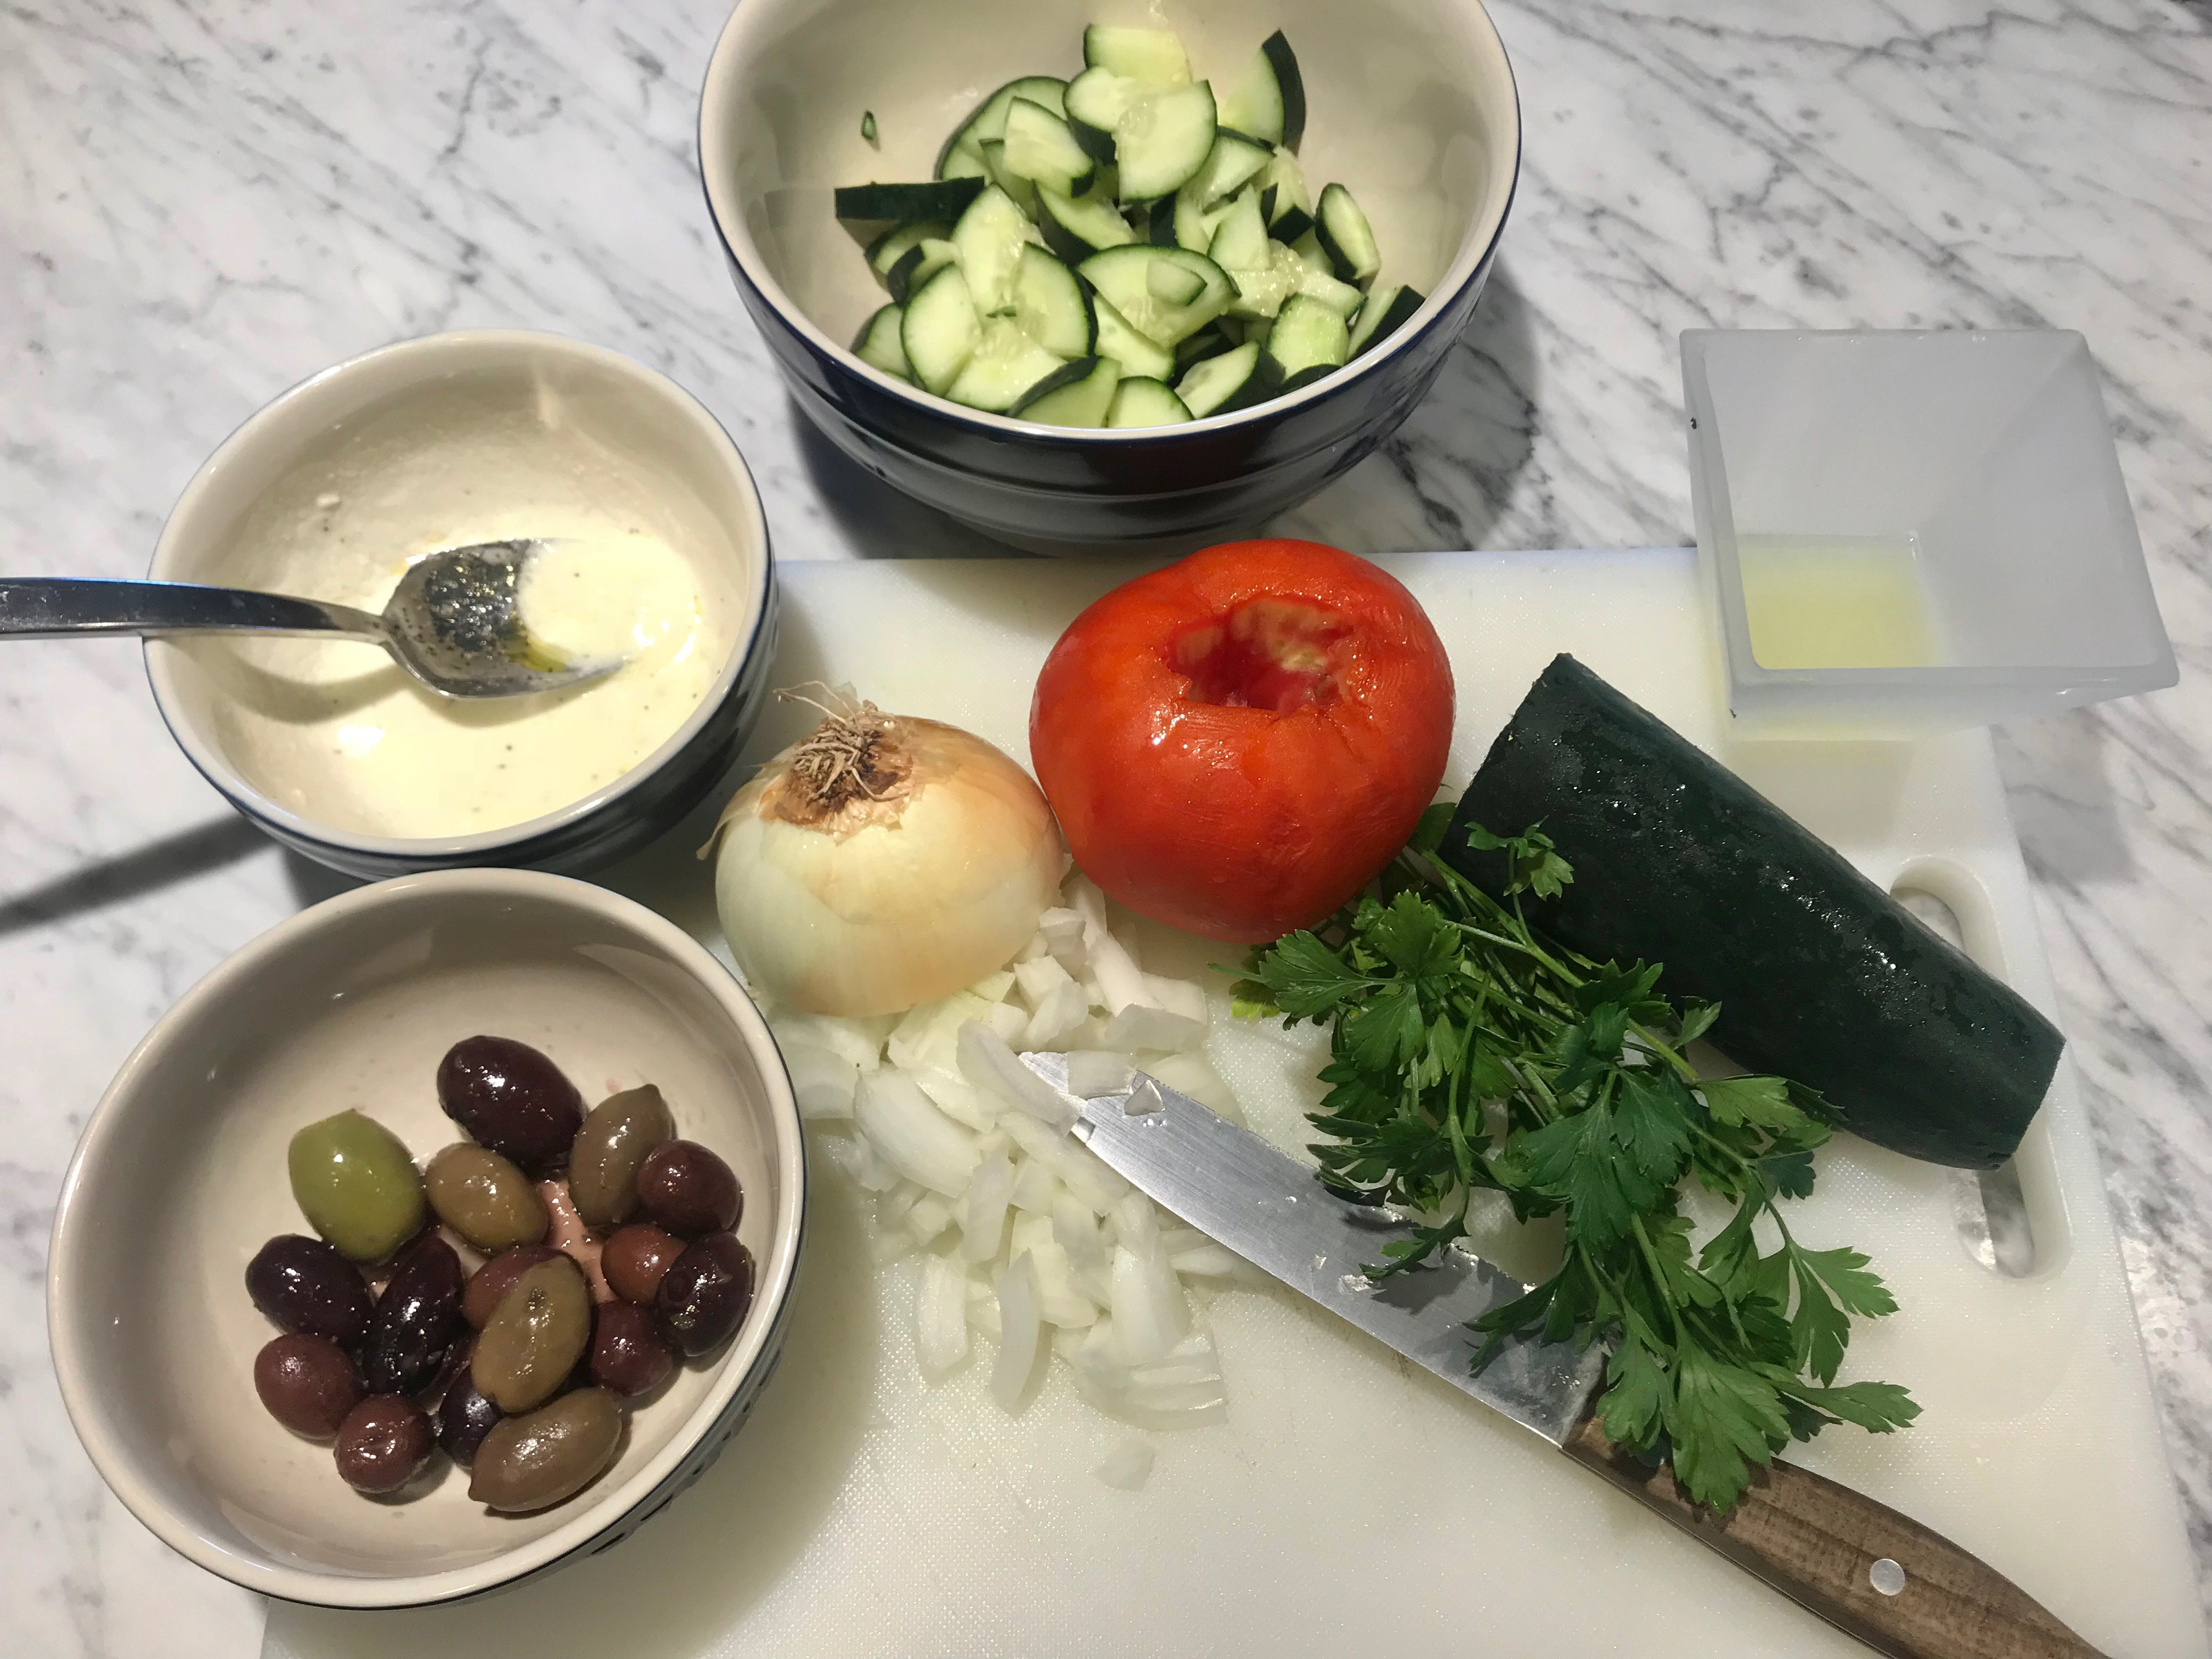 ingredients for Greek Salad recipe by Chef Elysabeth Alfano